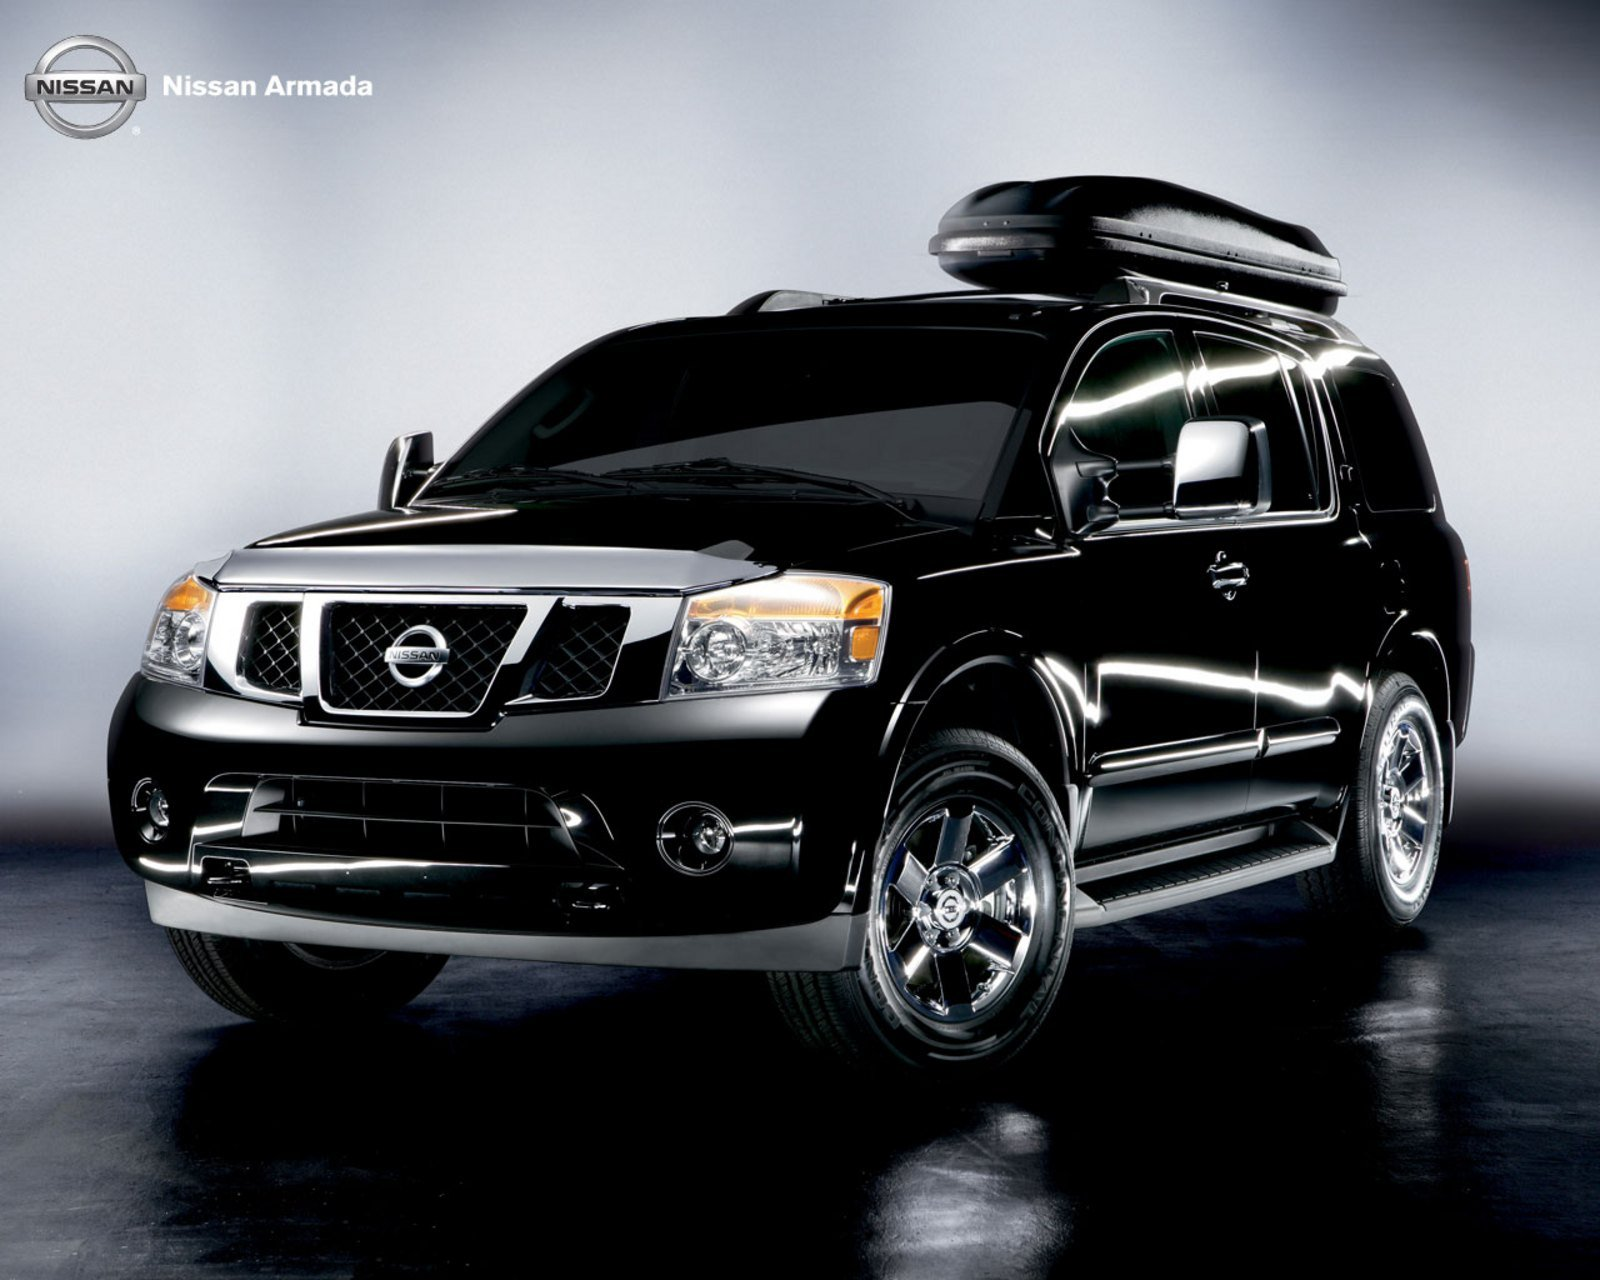 2010 Nissan Armada Review - Top Speed